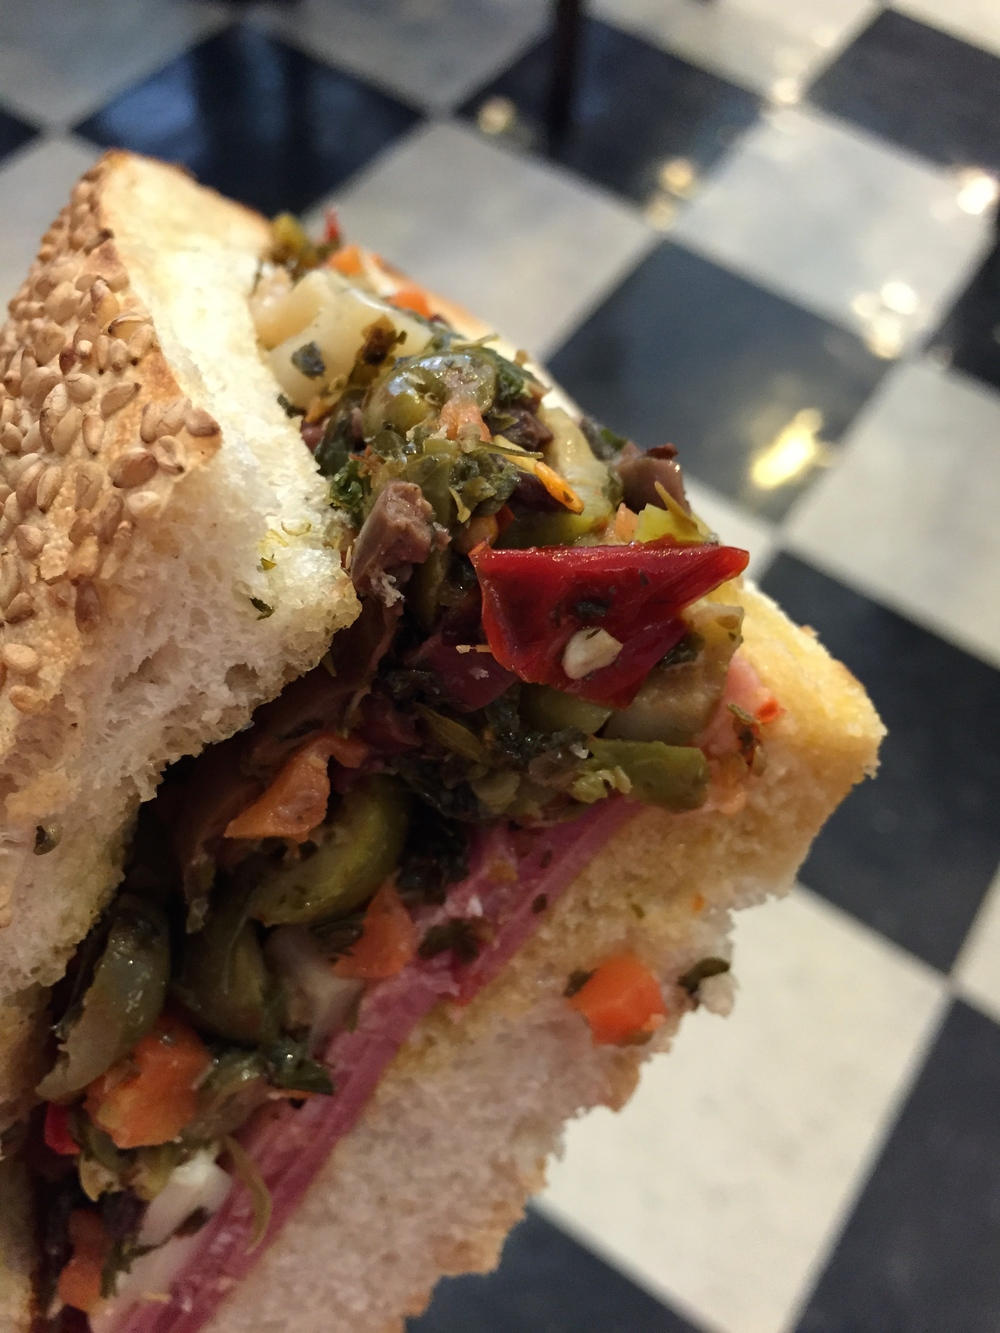 Muffuletta - New Orleans Sicilian sandwich consisting of Genoa Salami, Soppressata, Hot Capicola, and Mortadella meats, Provolone and Mozzarella cheeses, and House-Made Olive Salad on a sesame seeded Leidenheimer loaf.